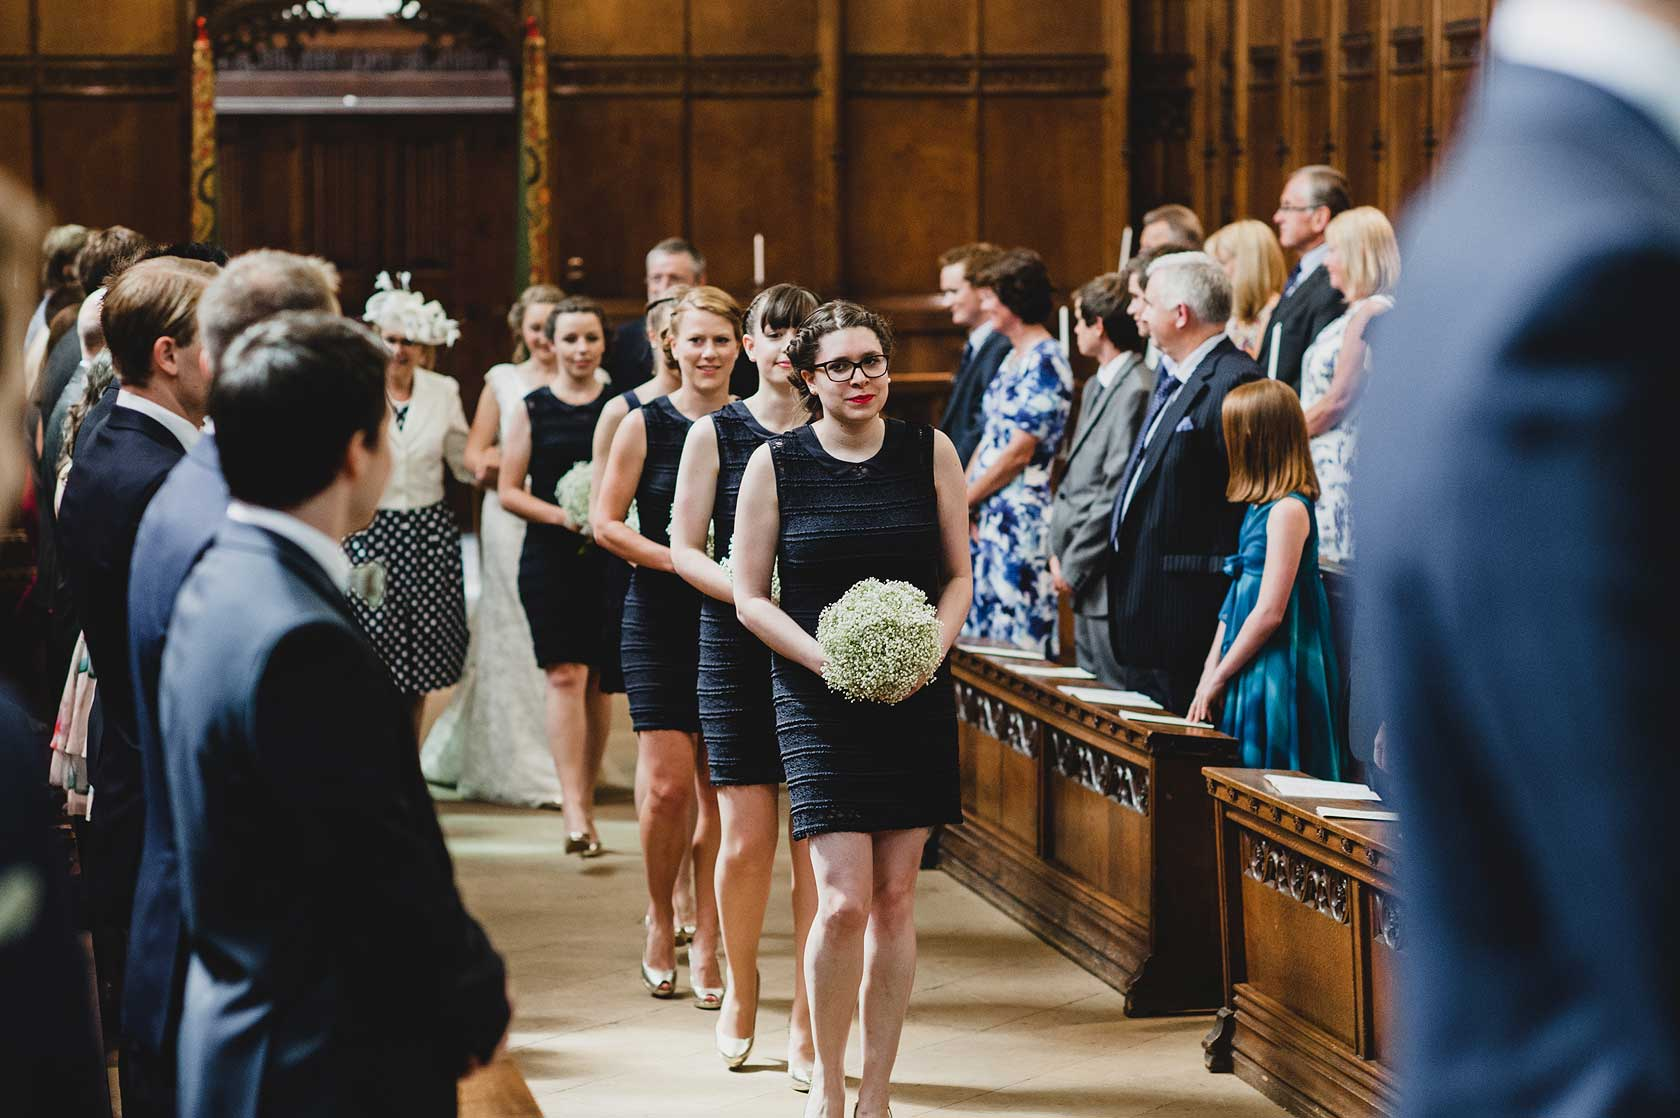 Reportage Wedding Photography at Queens College